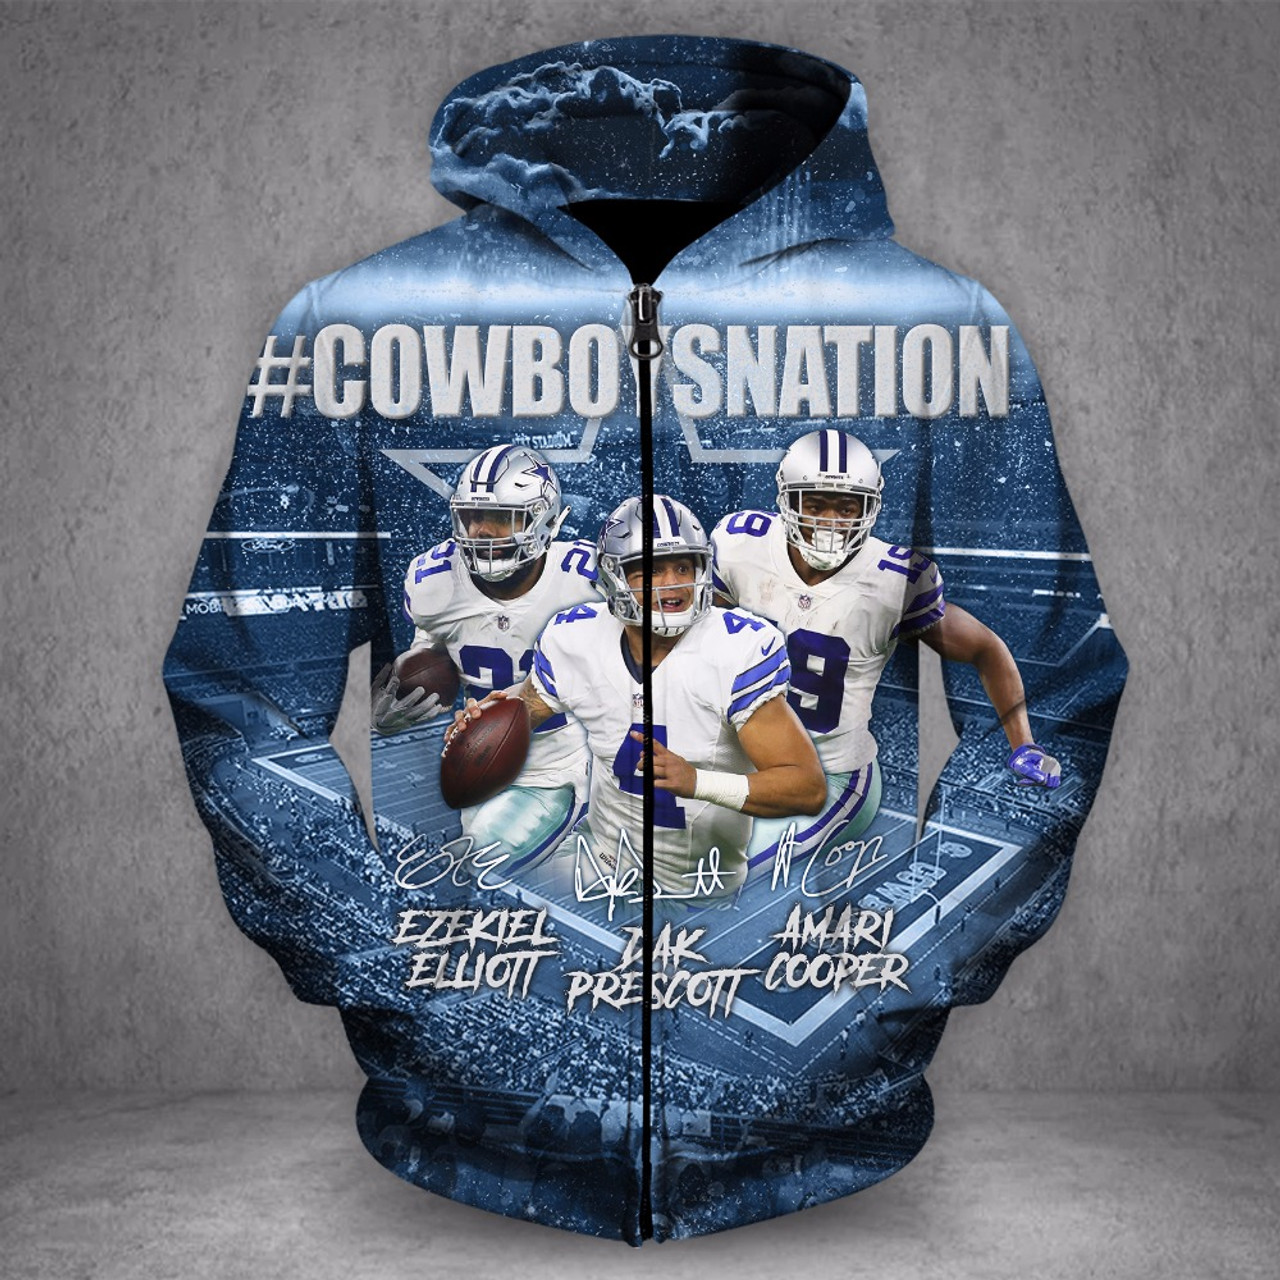 **(OFFICIALLY-LICENSED-N.F.L.DALLAS-COWBOYS-NATION & DAK-PRESCOTT-NO.4-STYLISH-ZIPPER-UP-HOODIES/NICE-CUSTOM-3D-GRAPHIC-PRINTED-DOUBLE-SIDED-ALL-OVER-GRAPHICS,IN-COWBOYS-TEAM-COLORS/WARM-PREMIUM-OFFICIAL-N.F.L.COWBOYS-TEAM-ZIPPER-UP-HOODIES)**